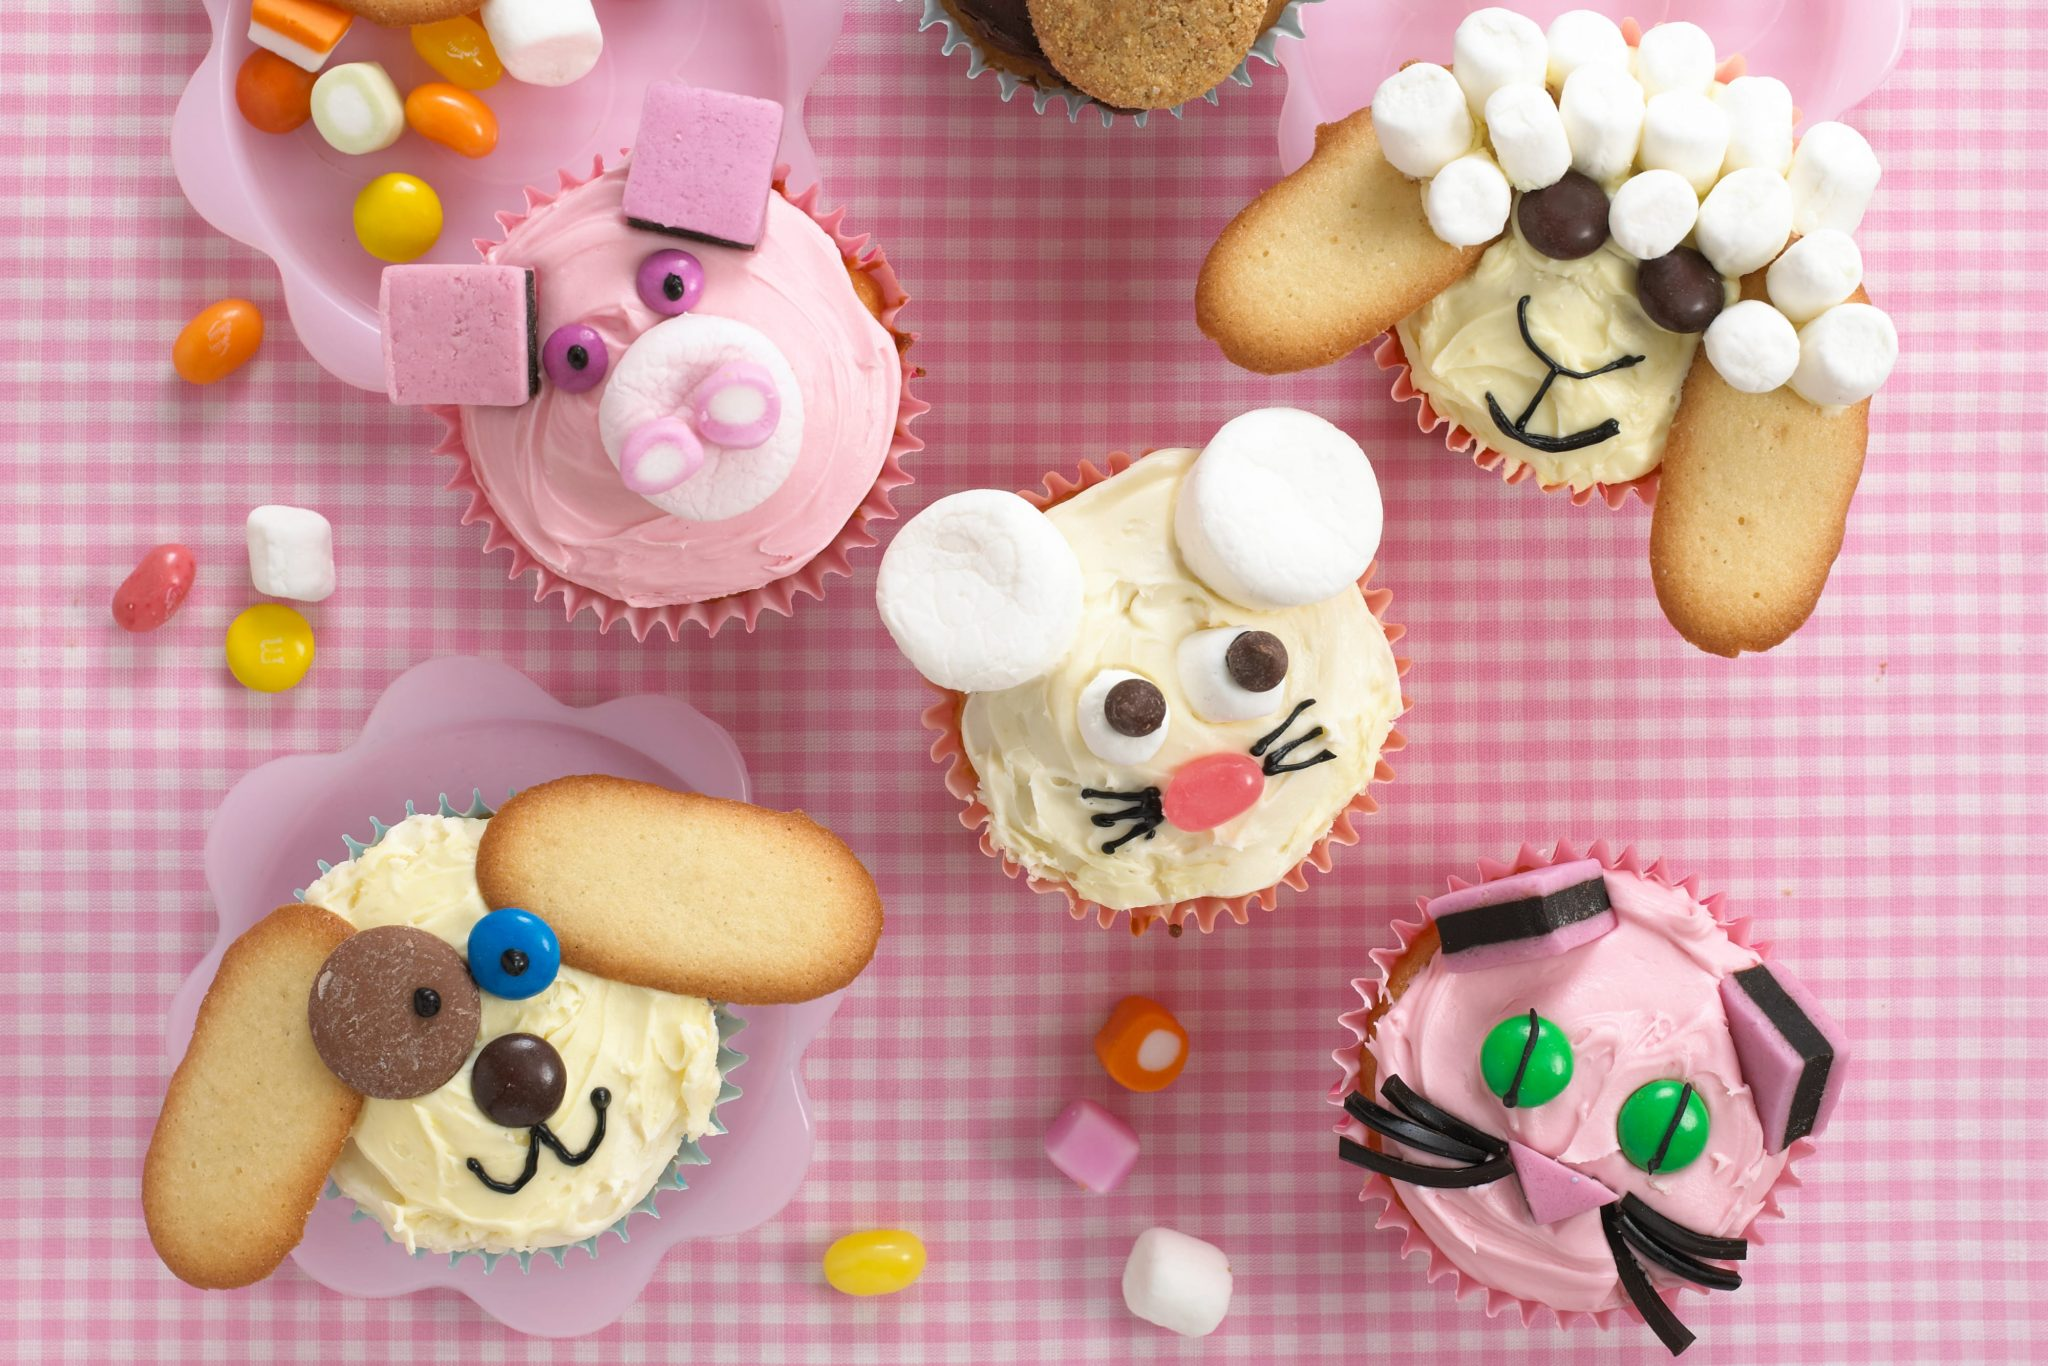 Animal cupcakes recipe by Annabel Karmel